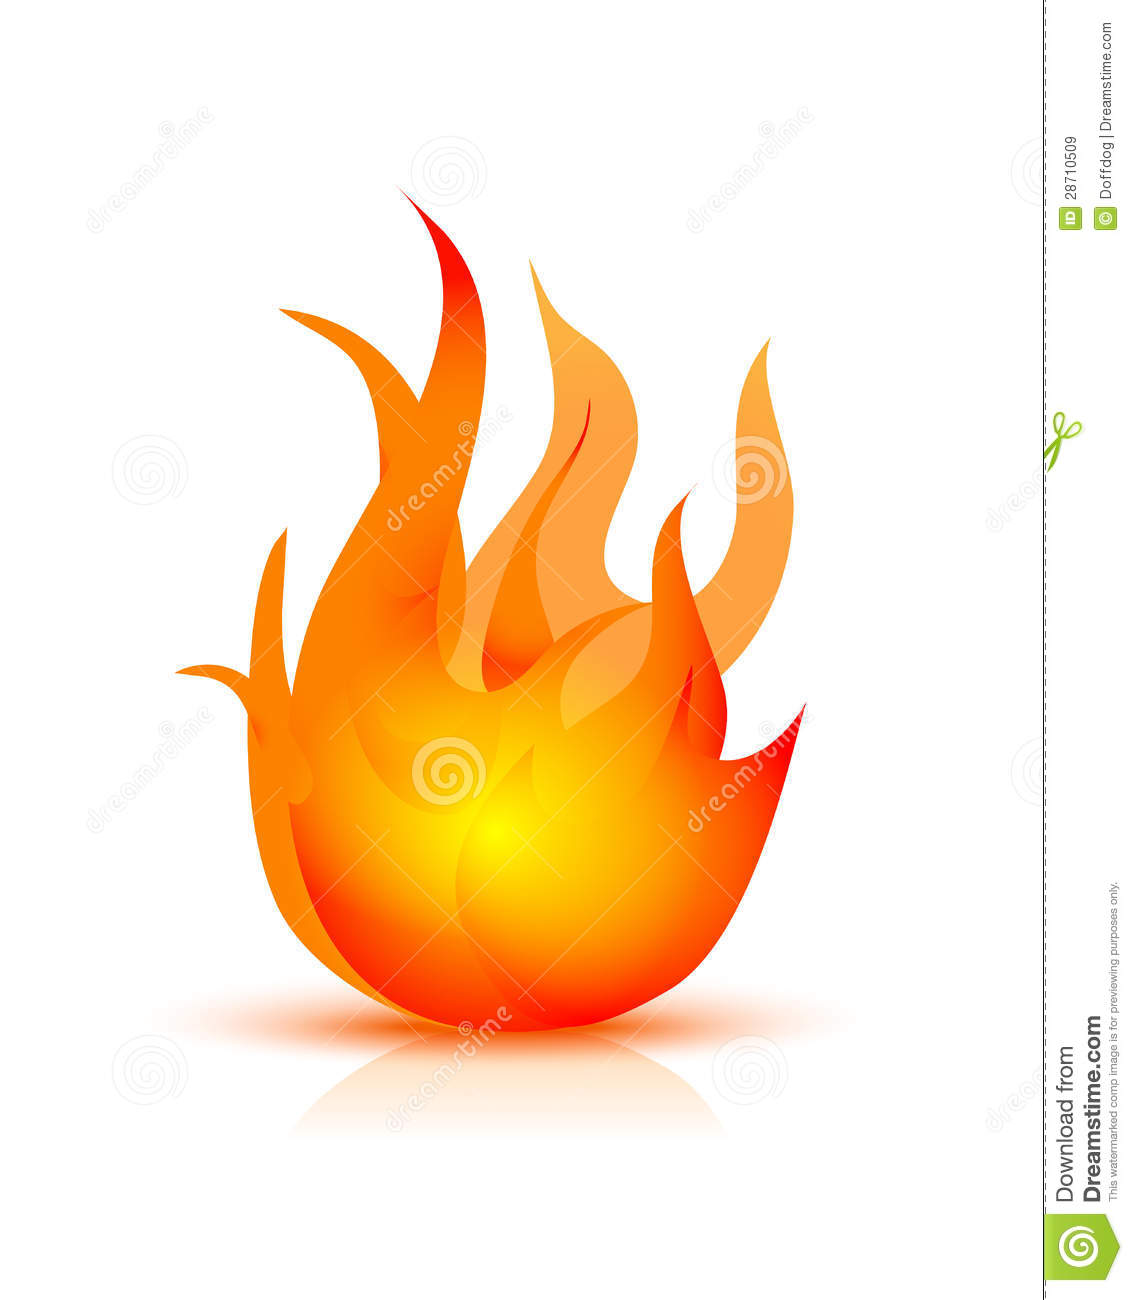 fire icon royalty free stock images image 28710509 Free Campfire Clip Art bonfire clipart free